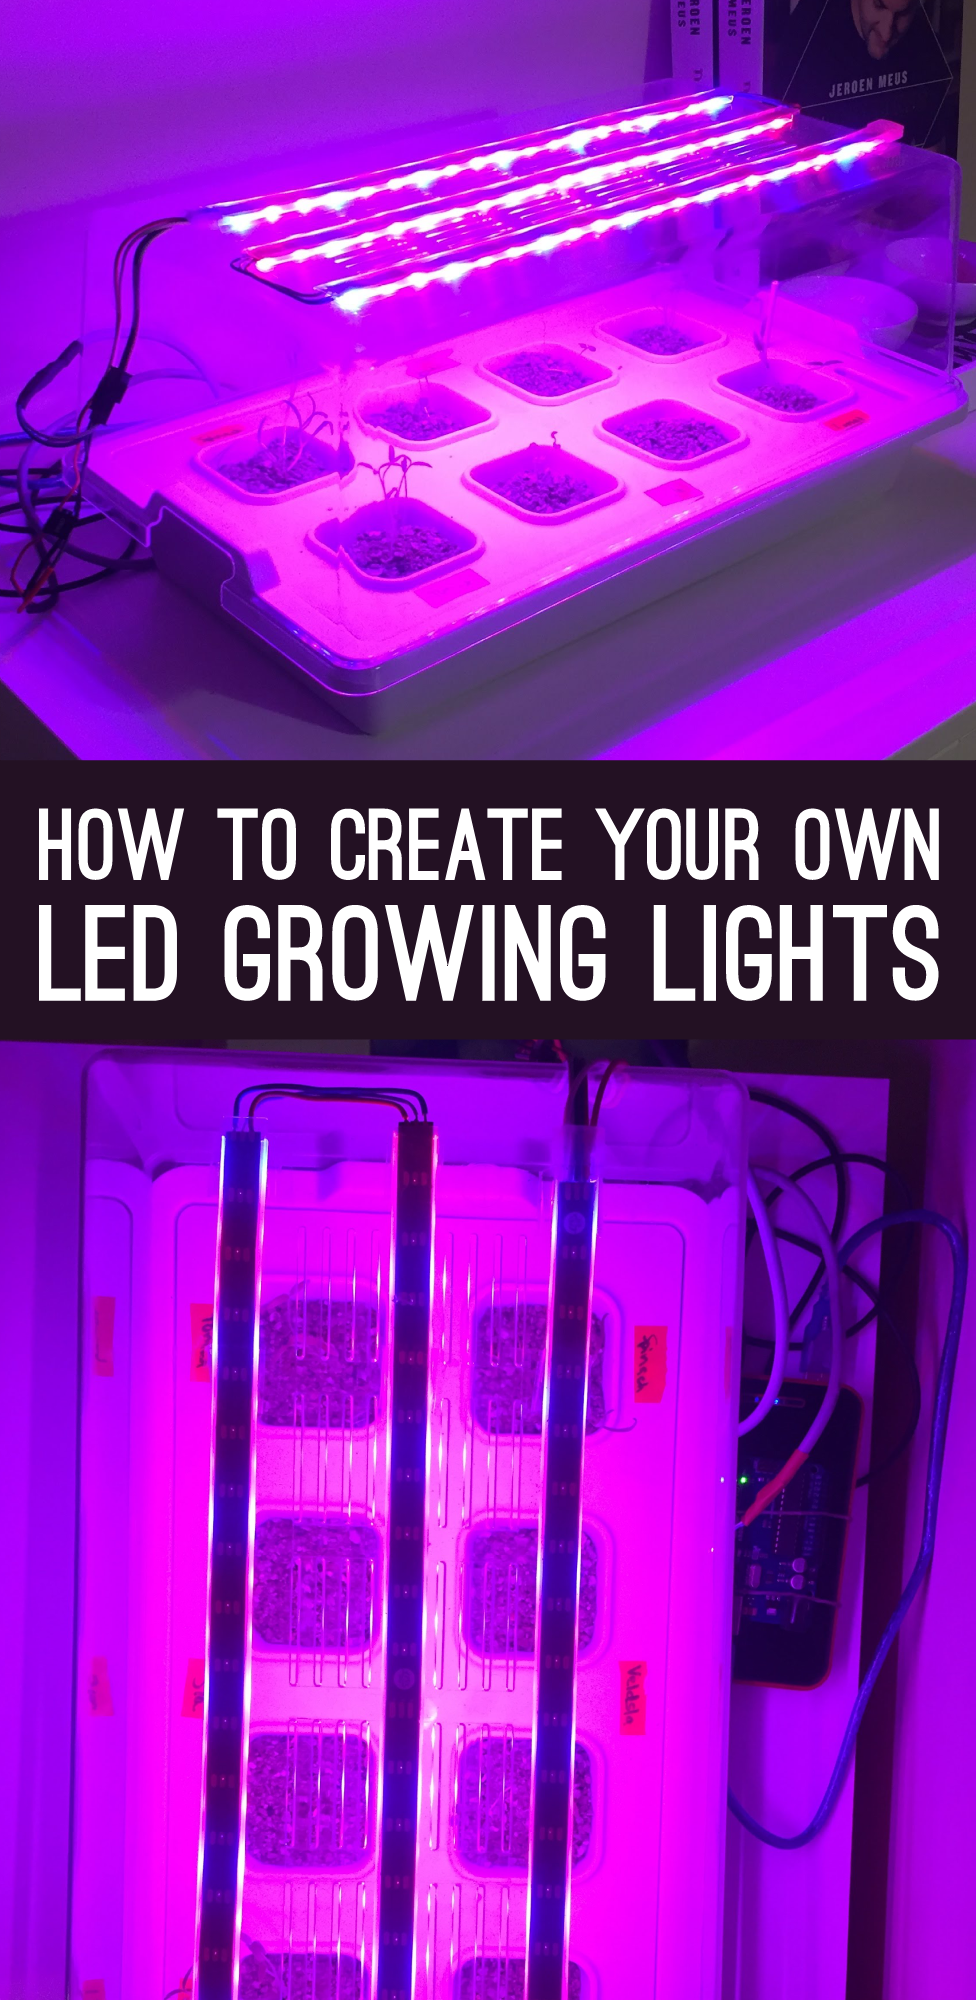 Make Your Own Led Growing Light With Arduino And Ws2812b